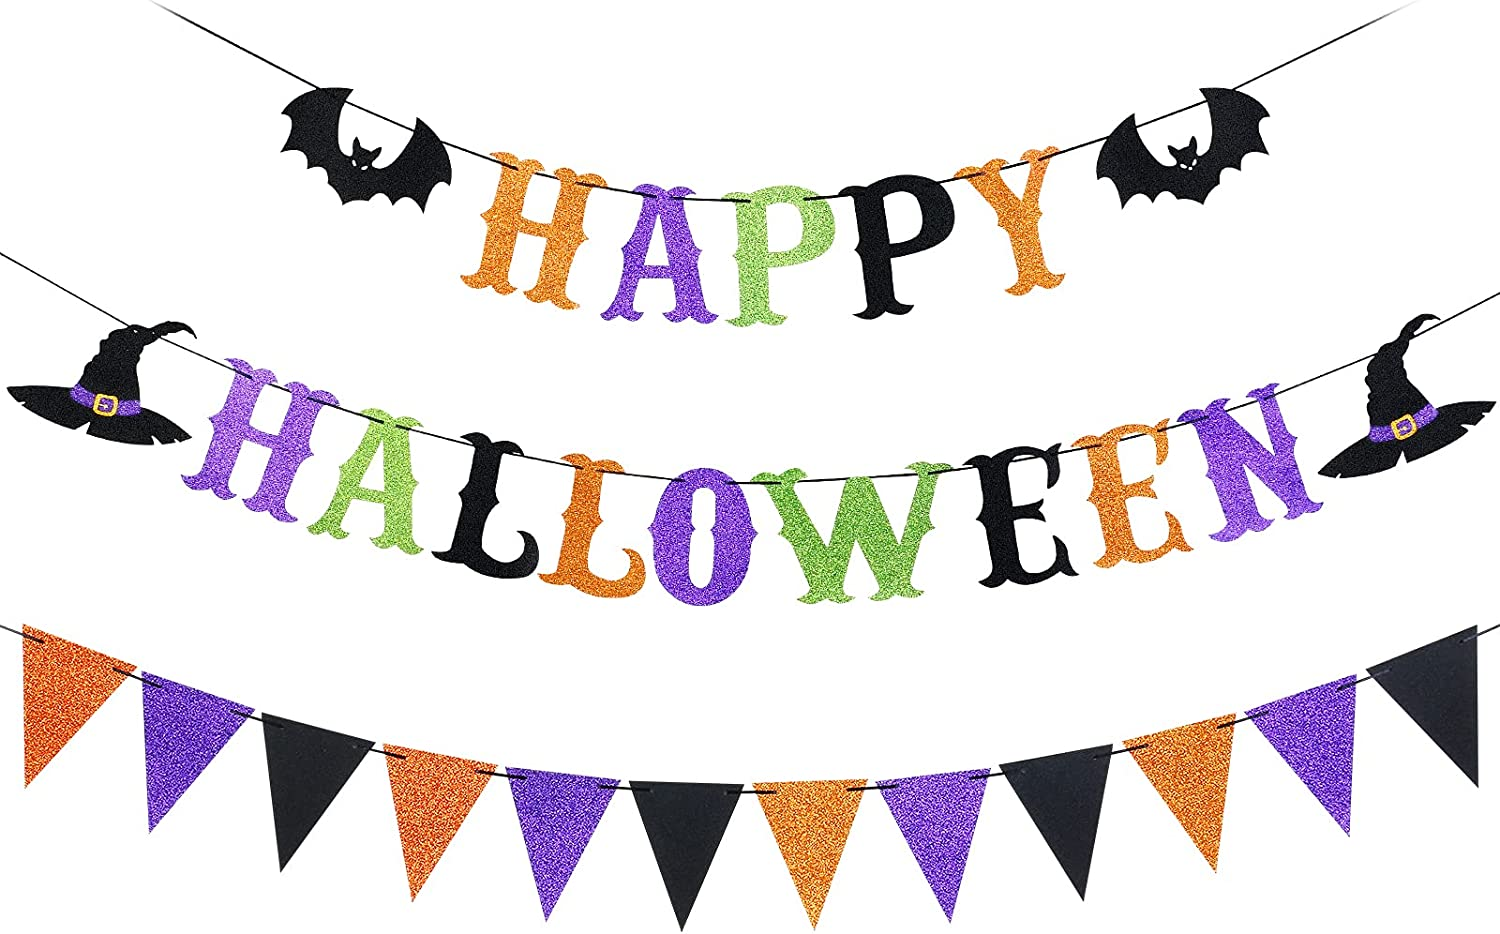 Happy Halloween Banner Halloween Witch Banner Party Decorations, Halloween Decorations Indoor, Halloween Banner Decorations for Haunted House Mantle Fireplace Office Home Decor